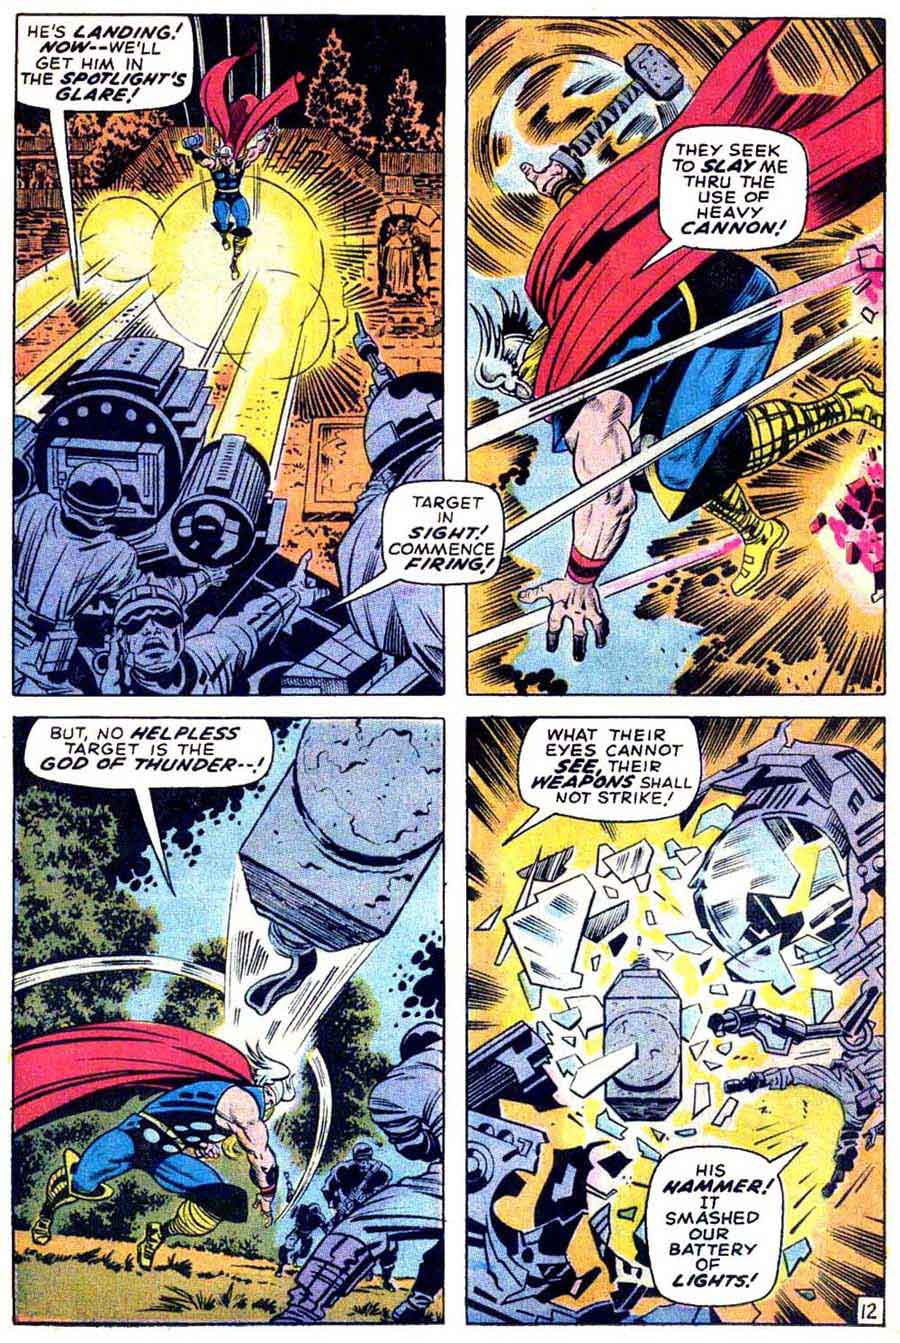 Thor v1 #172 marvel comic book page art by Jack Kirby, Bill Everett